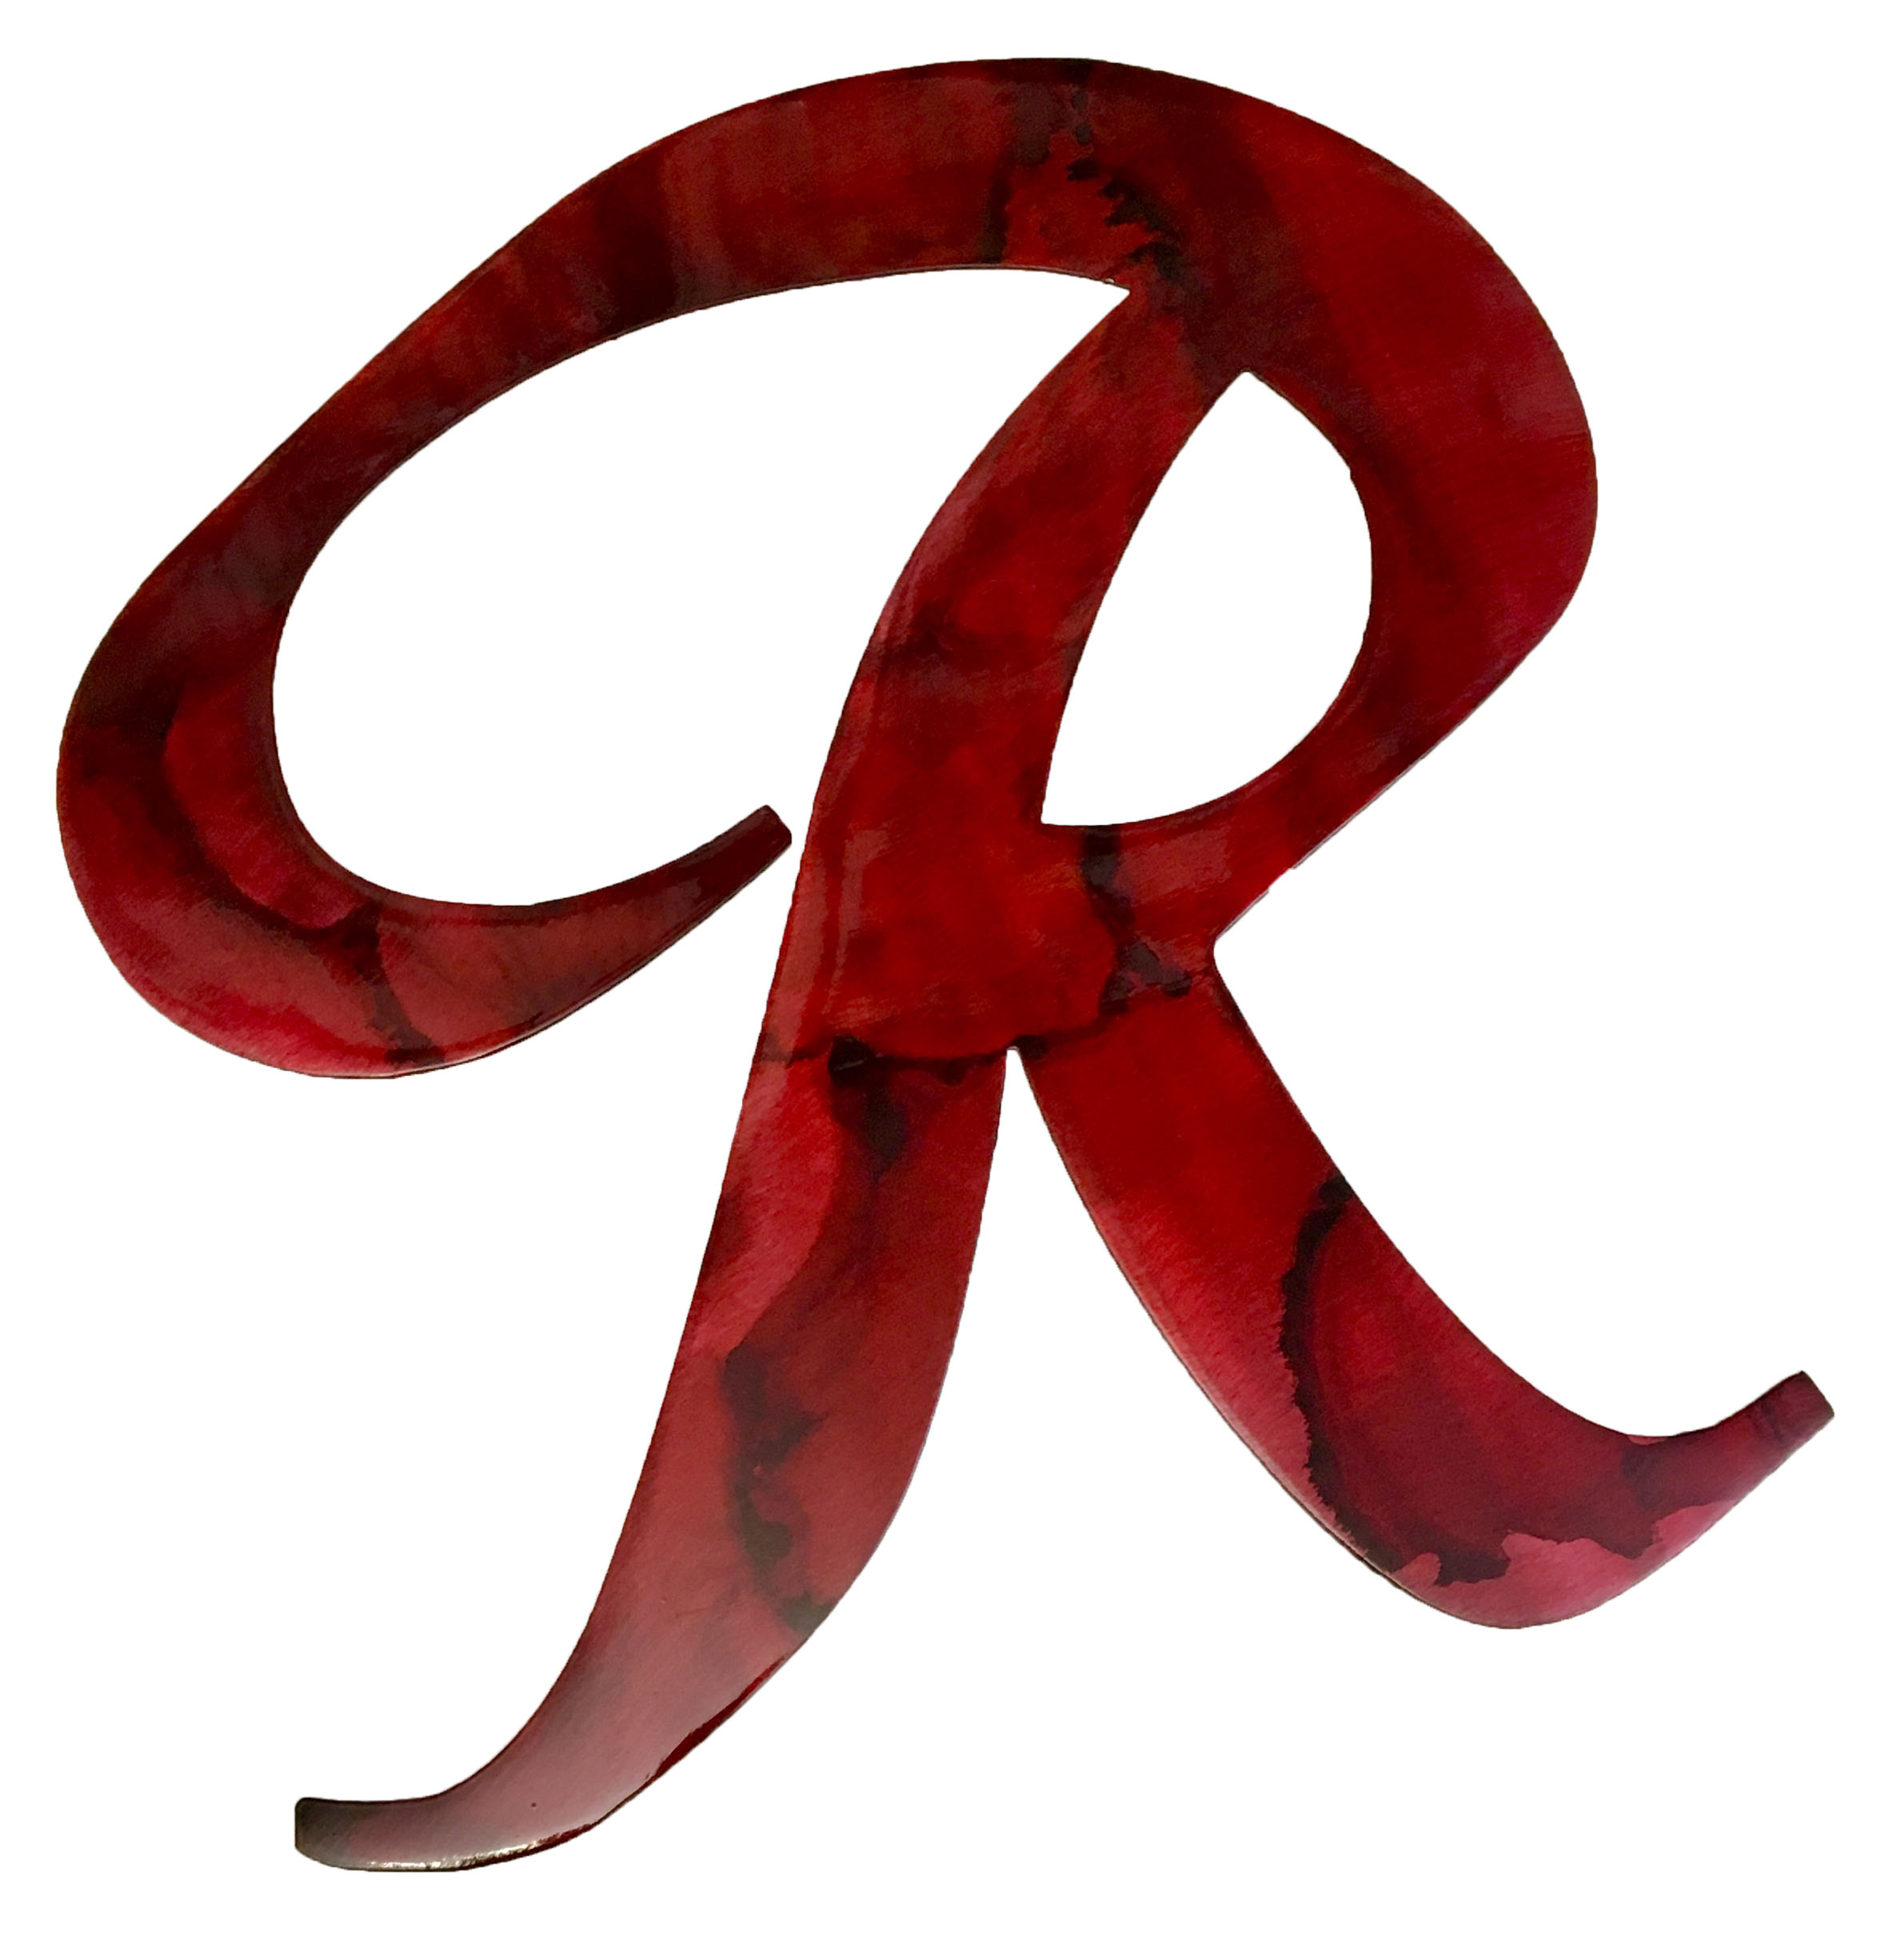 R_Rainier Beer Logo_Custom